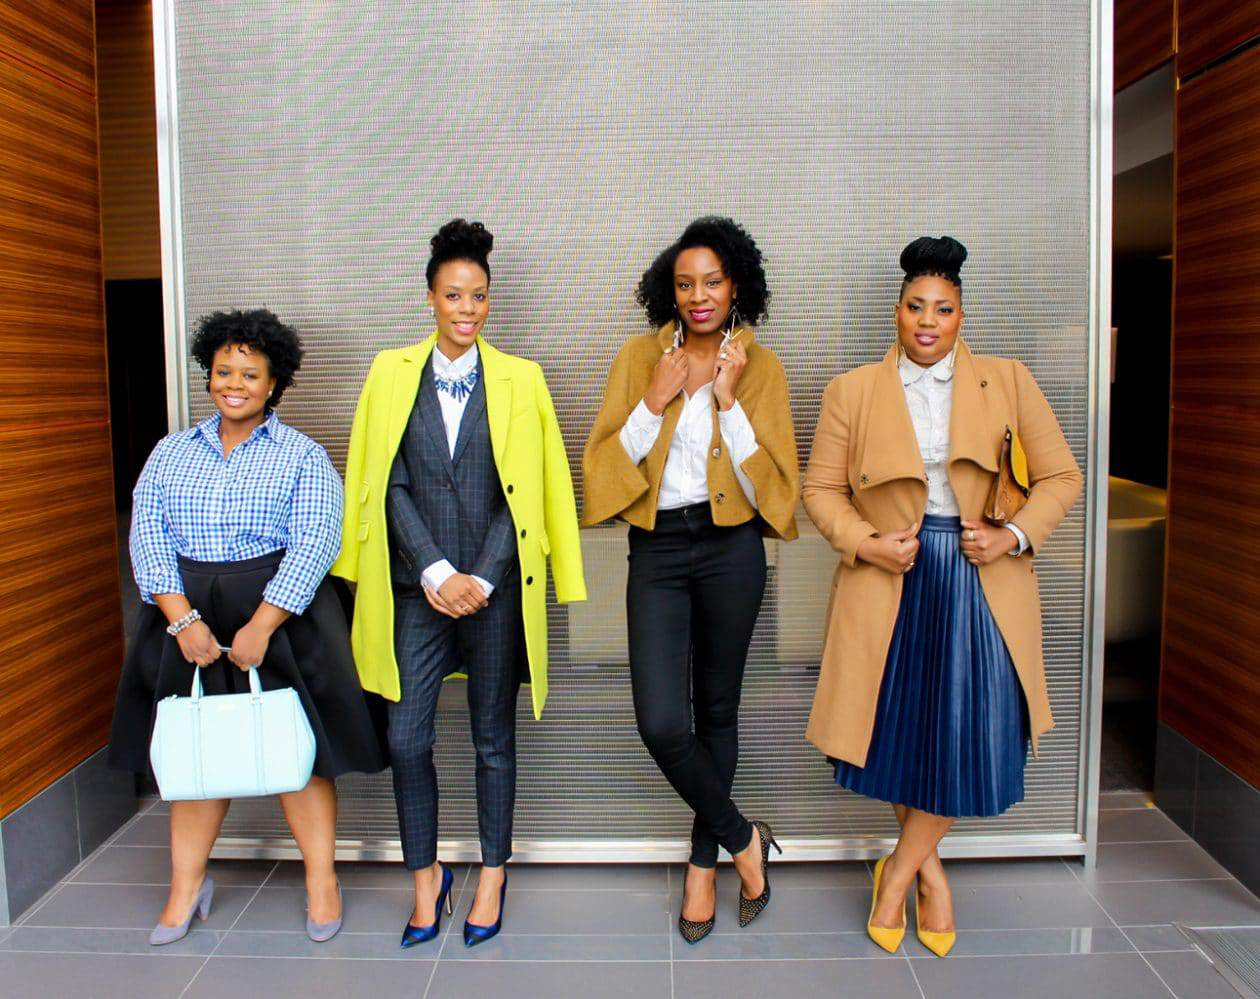 The Best of The Curvy Fashionista: 15 Breakout Personal Style Bloggers of 2015